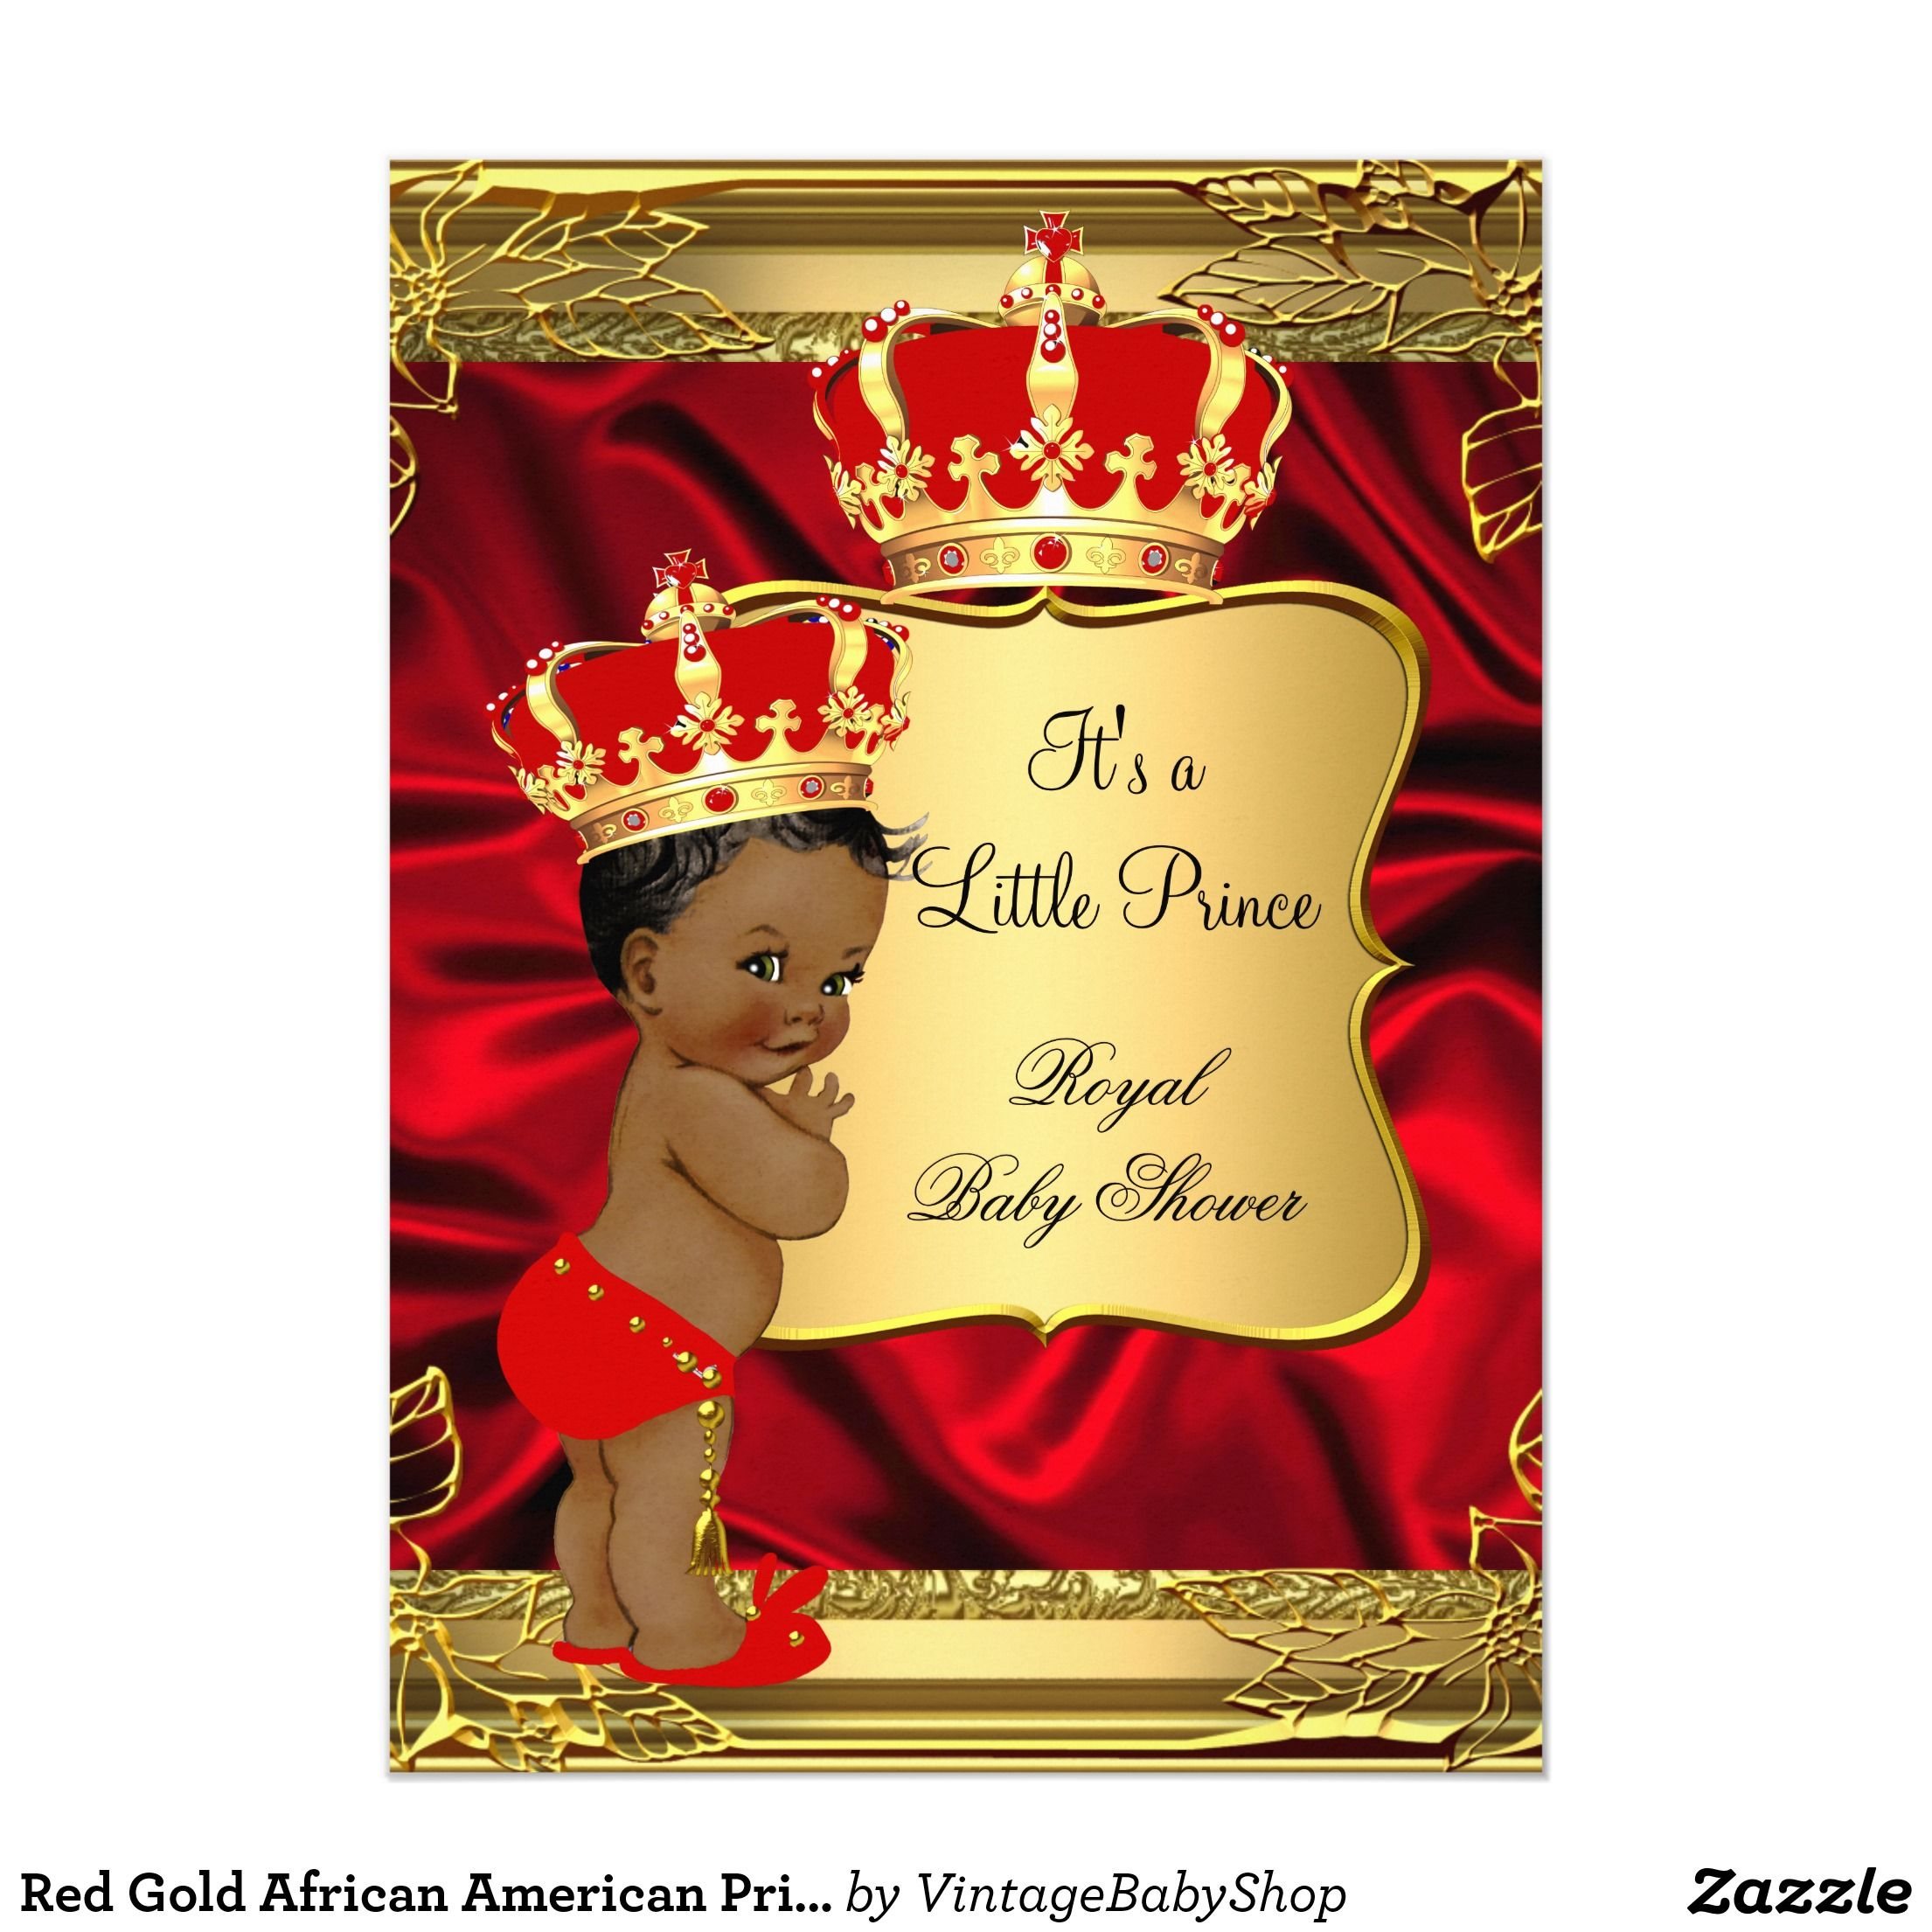 Red Gold African American Prince Baby Shower Invitation | Pinterest ...